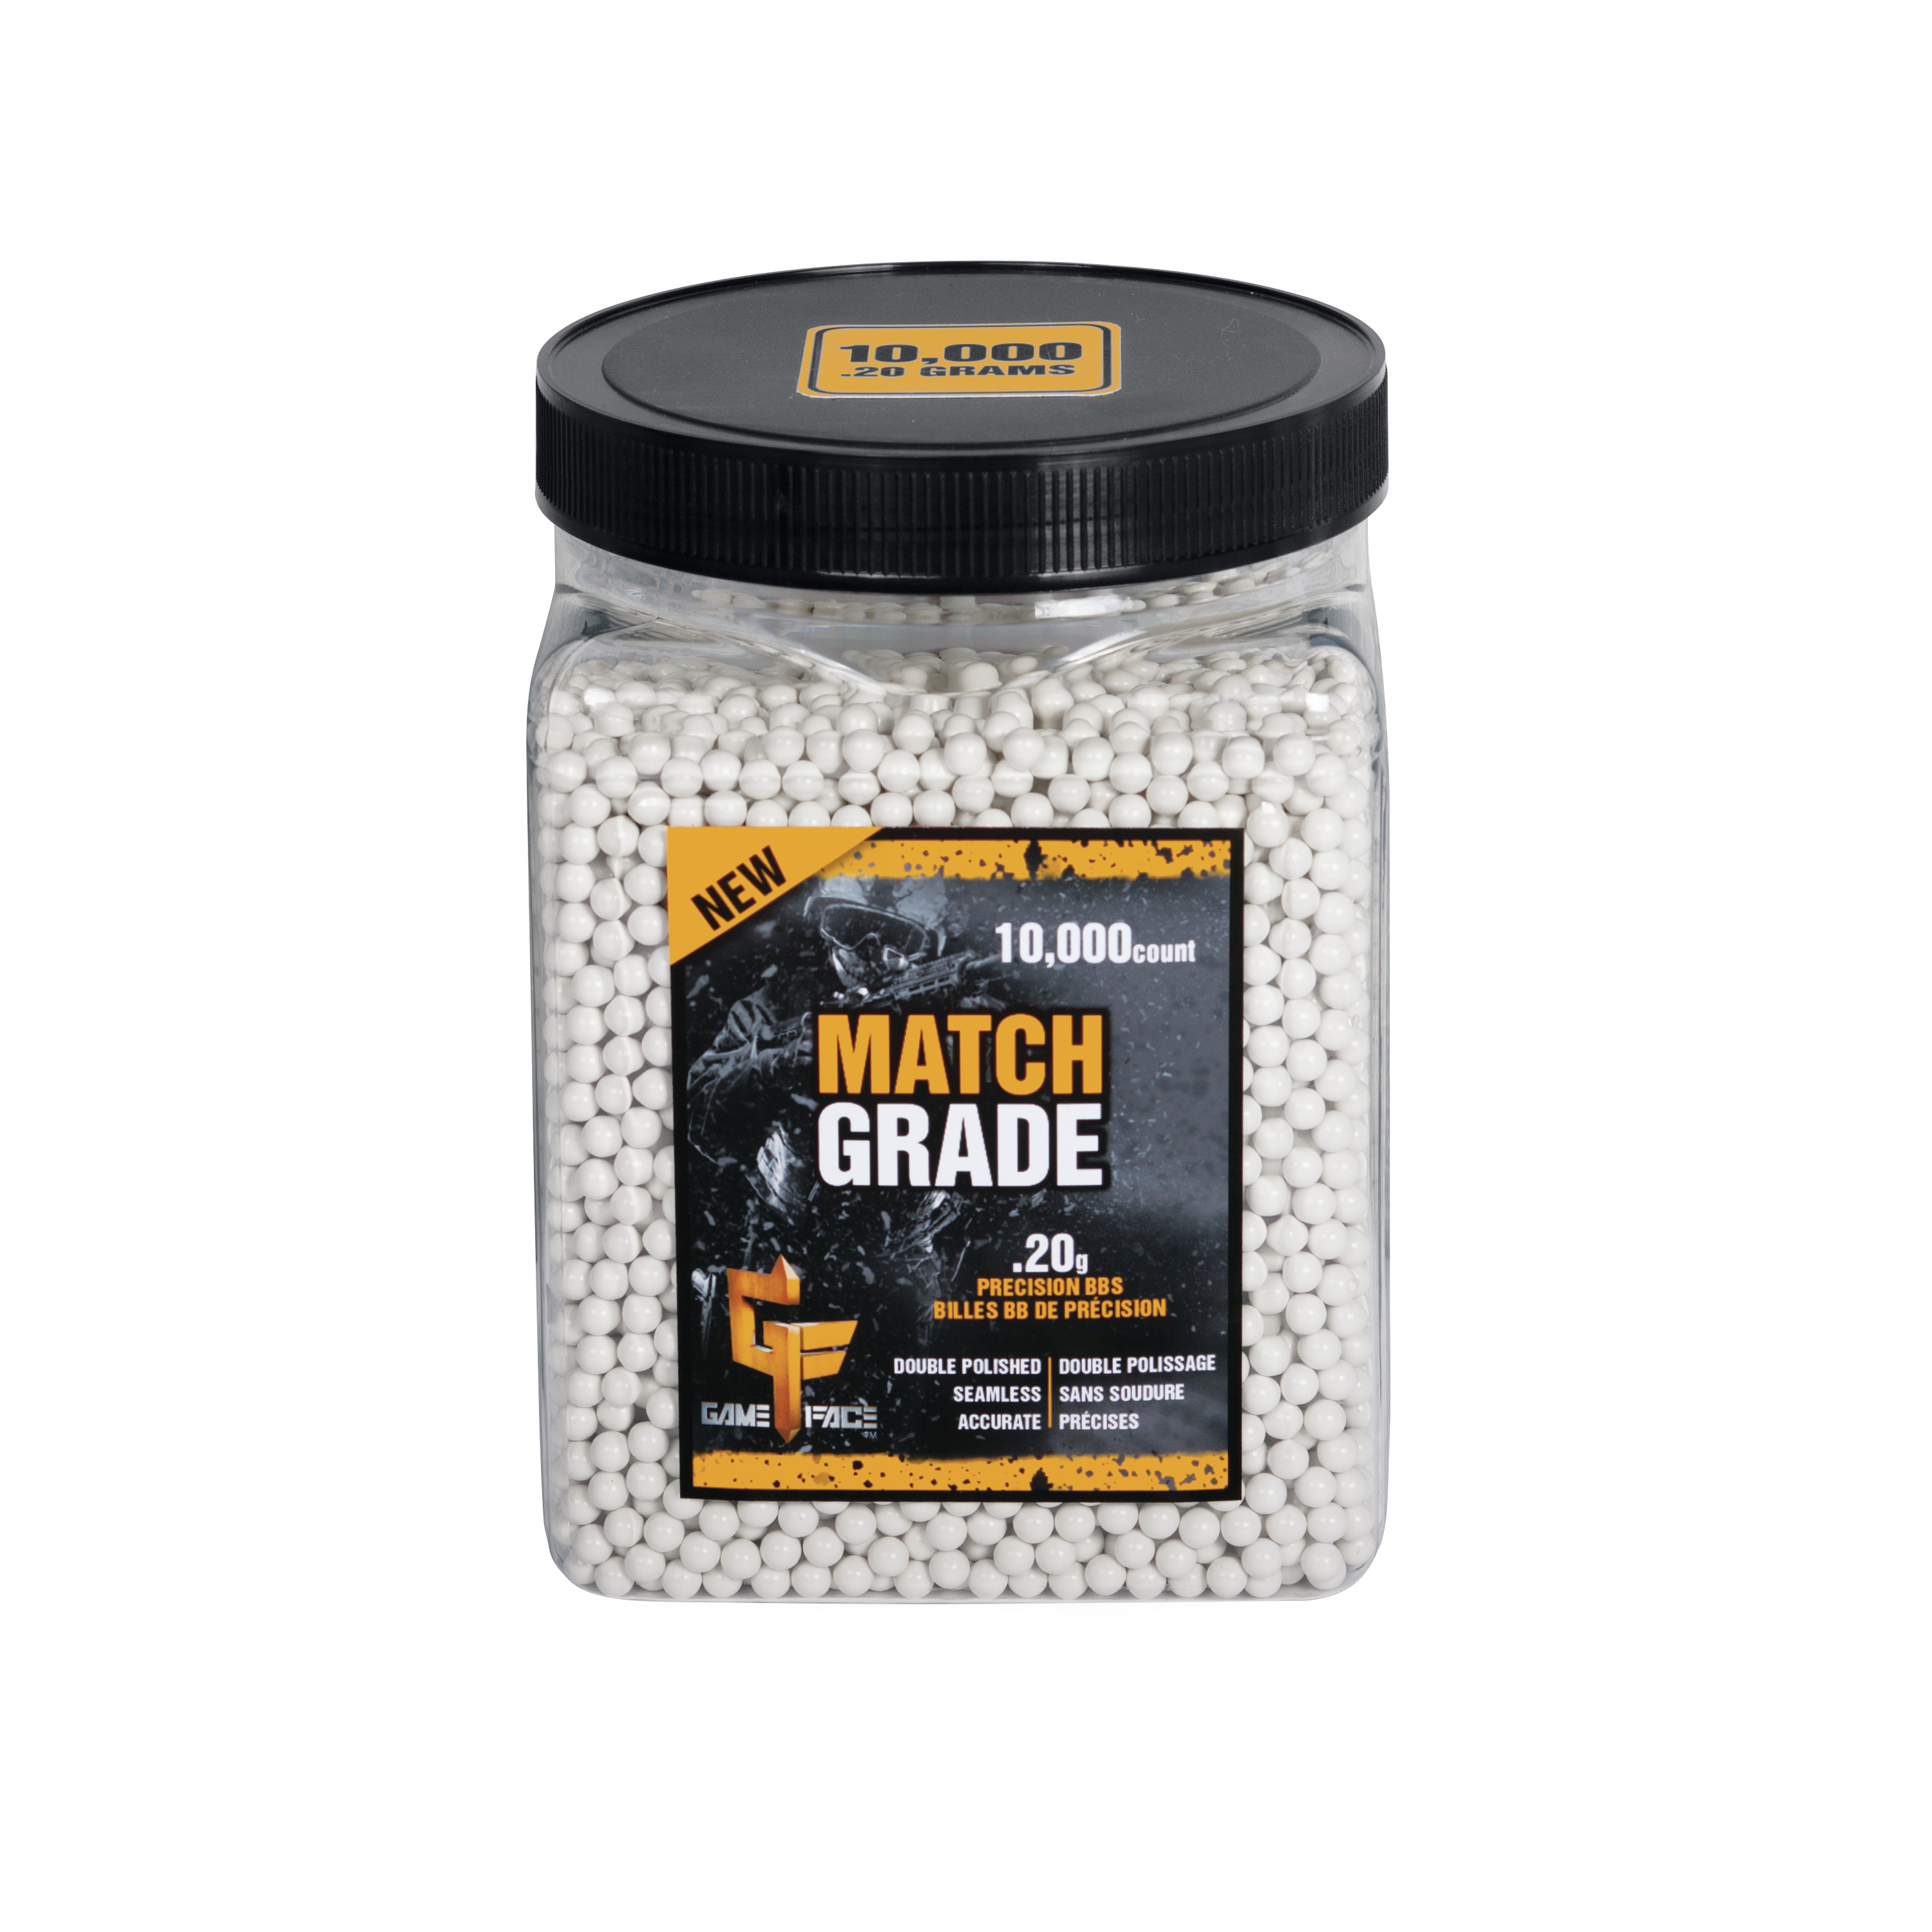 Gameface Professional Heavy Weight Match 20gr Airsoft BB Ammo, 10,000ct